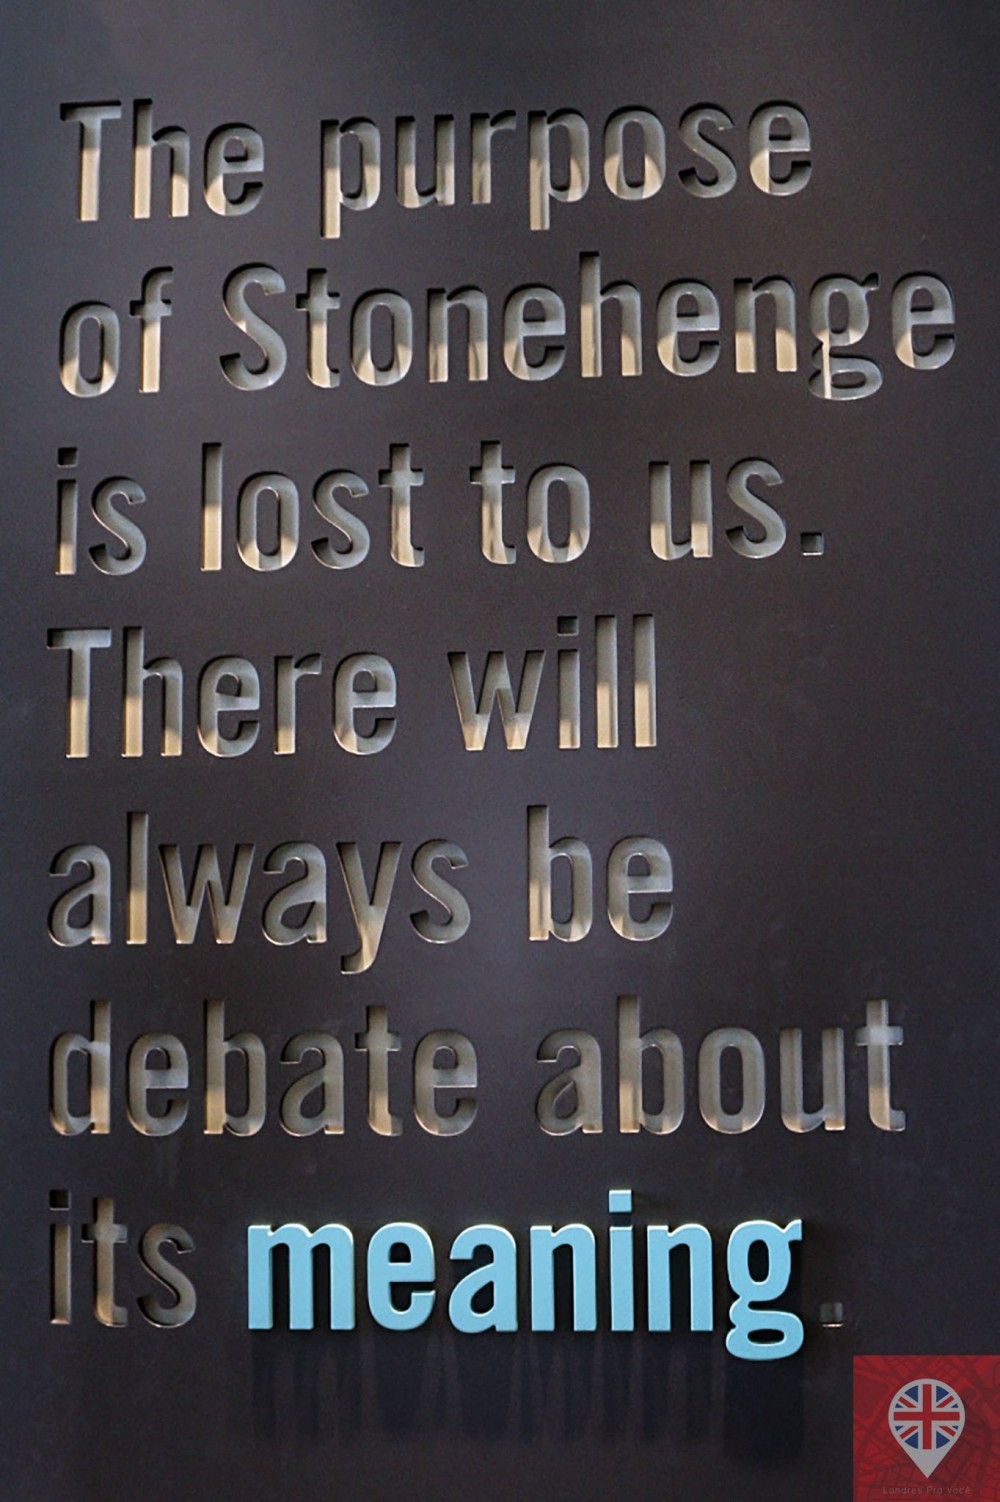 stonehenge-purpose